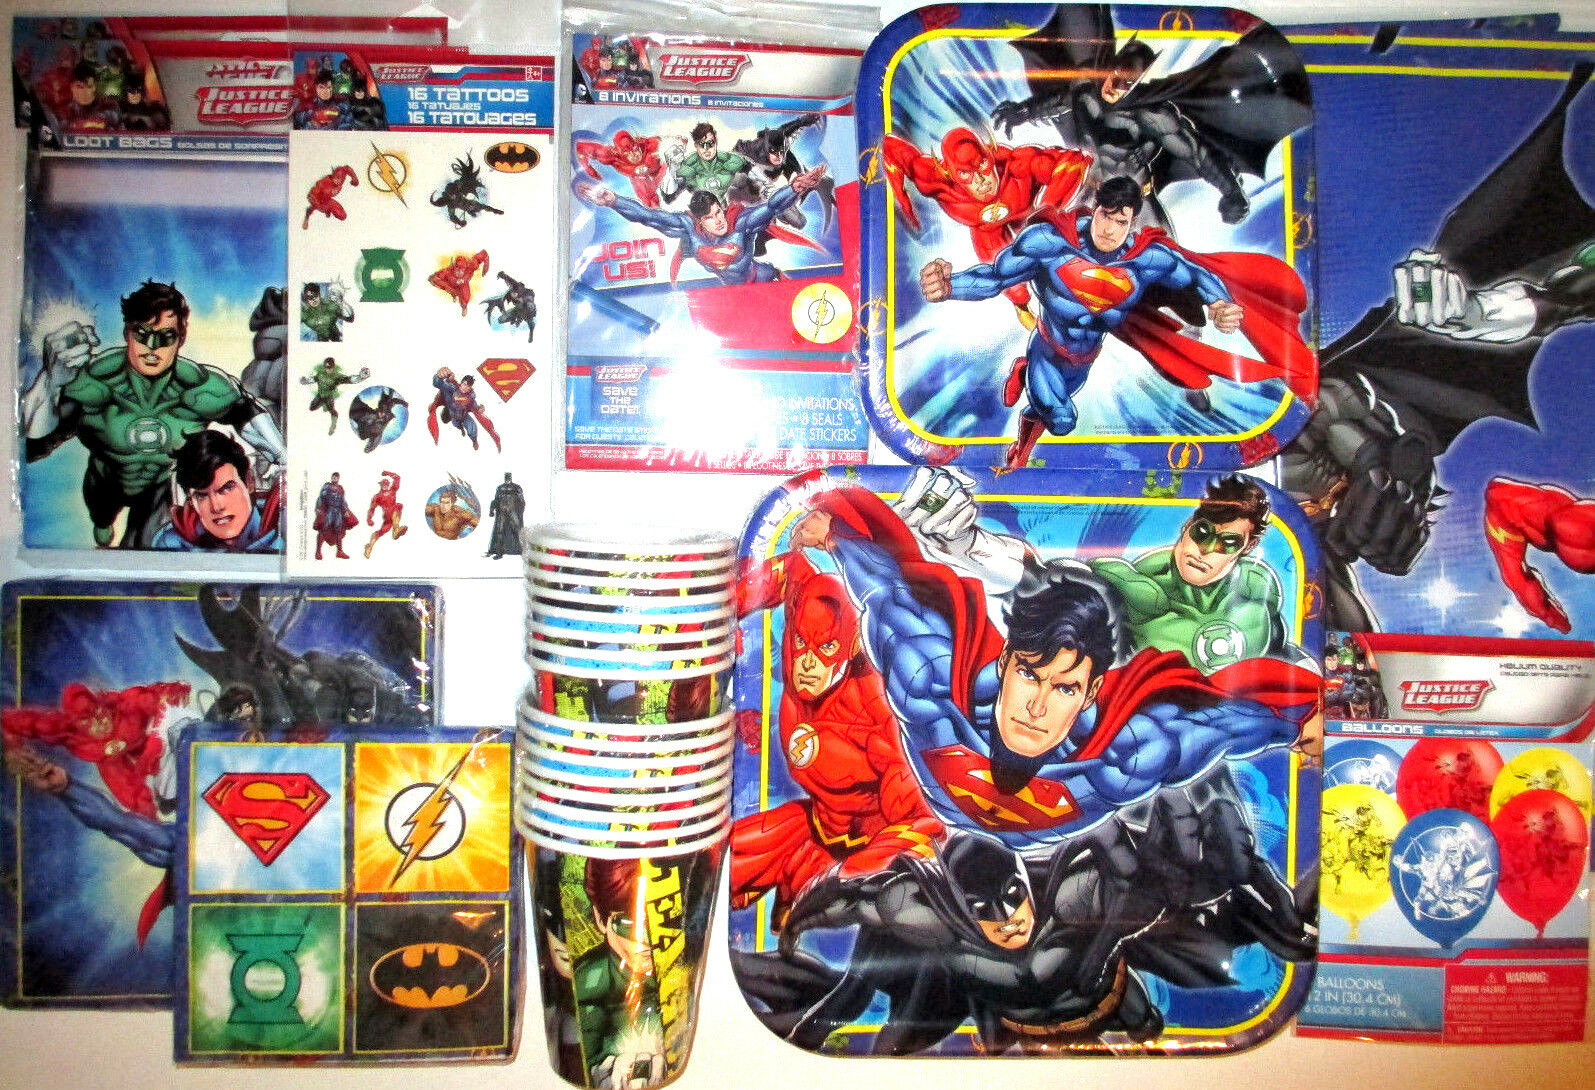 JUSTICE LEAGUE LEAGUE LEAGUE Birthday Party Supply SUPER Kit w Loot Bags, Invites & Balloons 925238